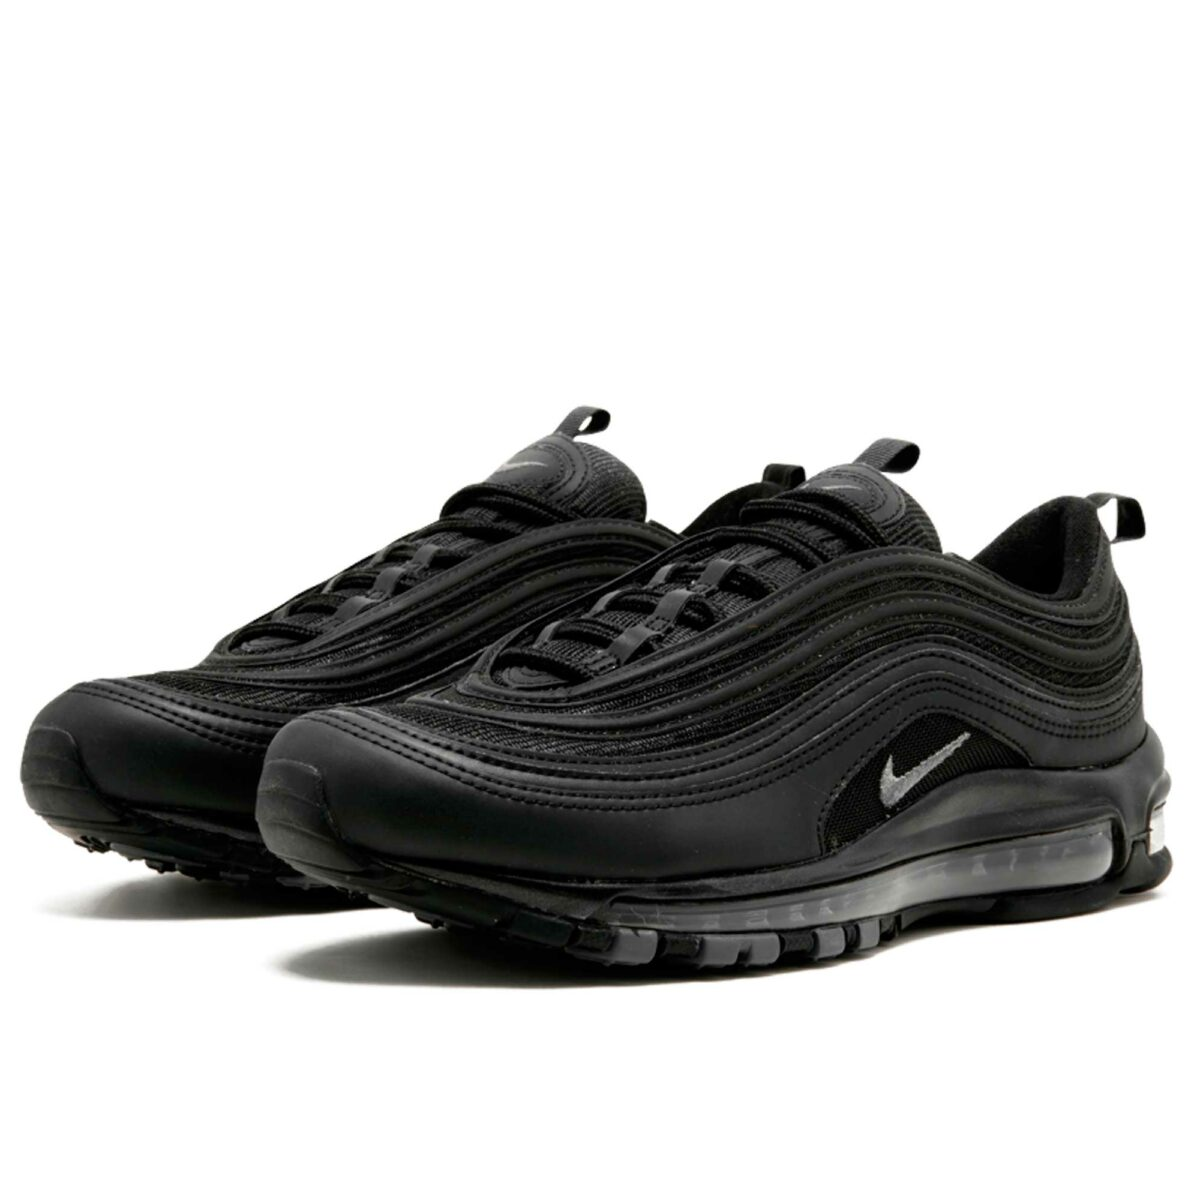 nike wmns air max 97 triple black 921733-001 купить